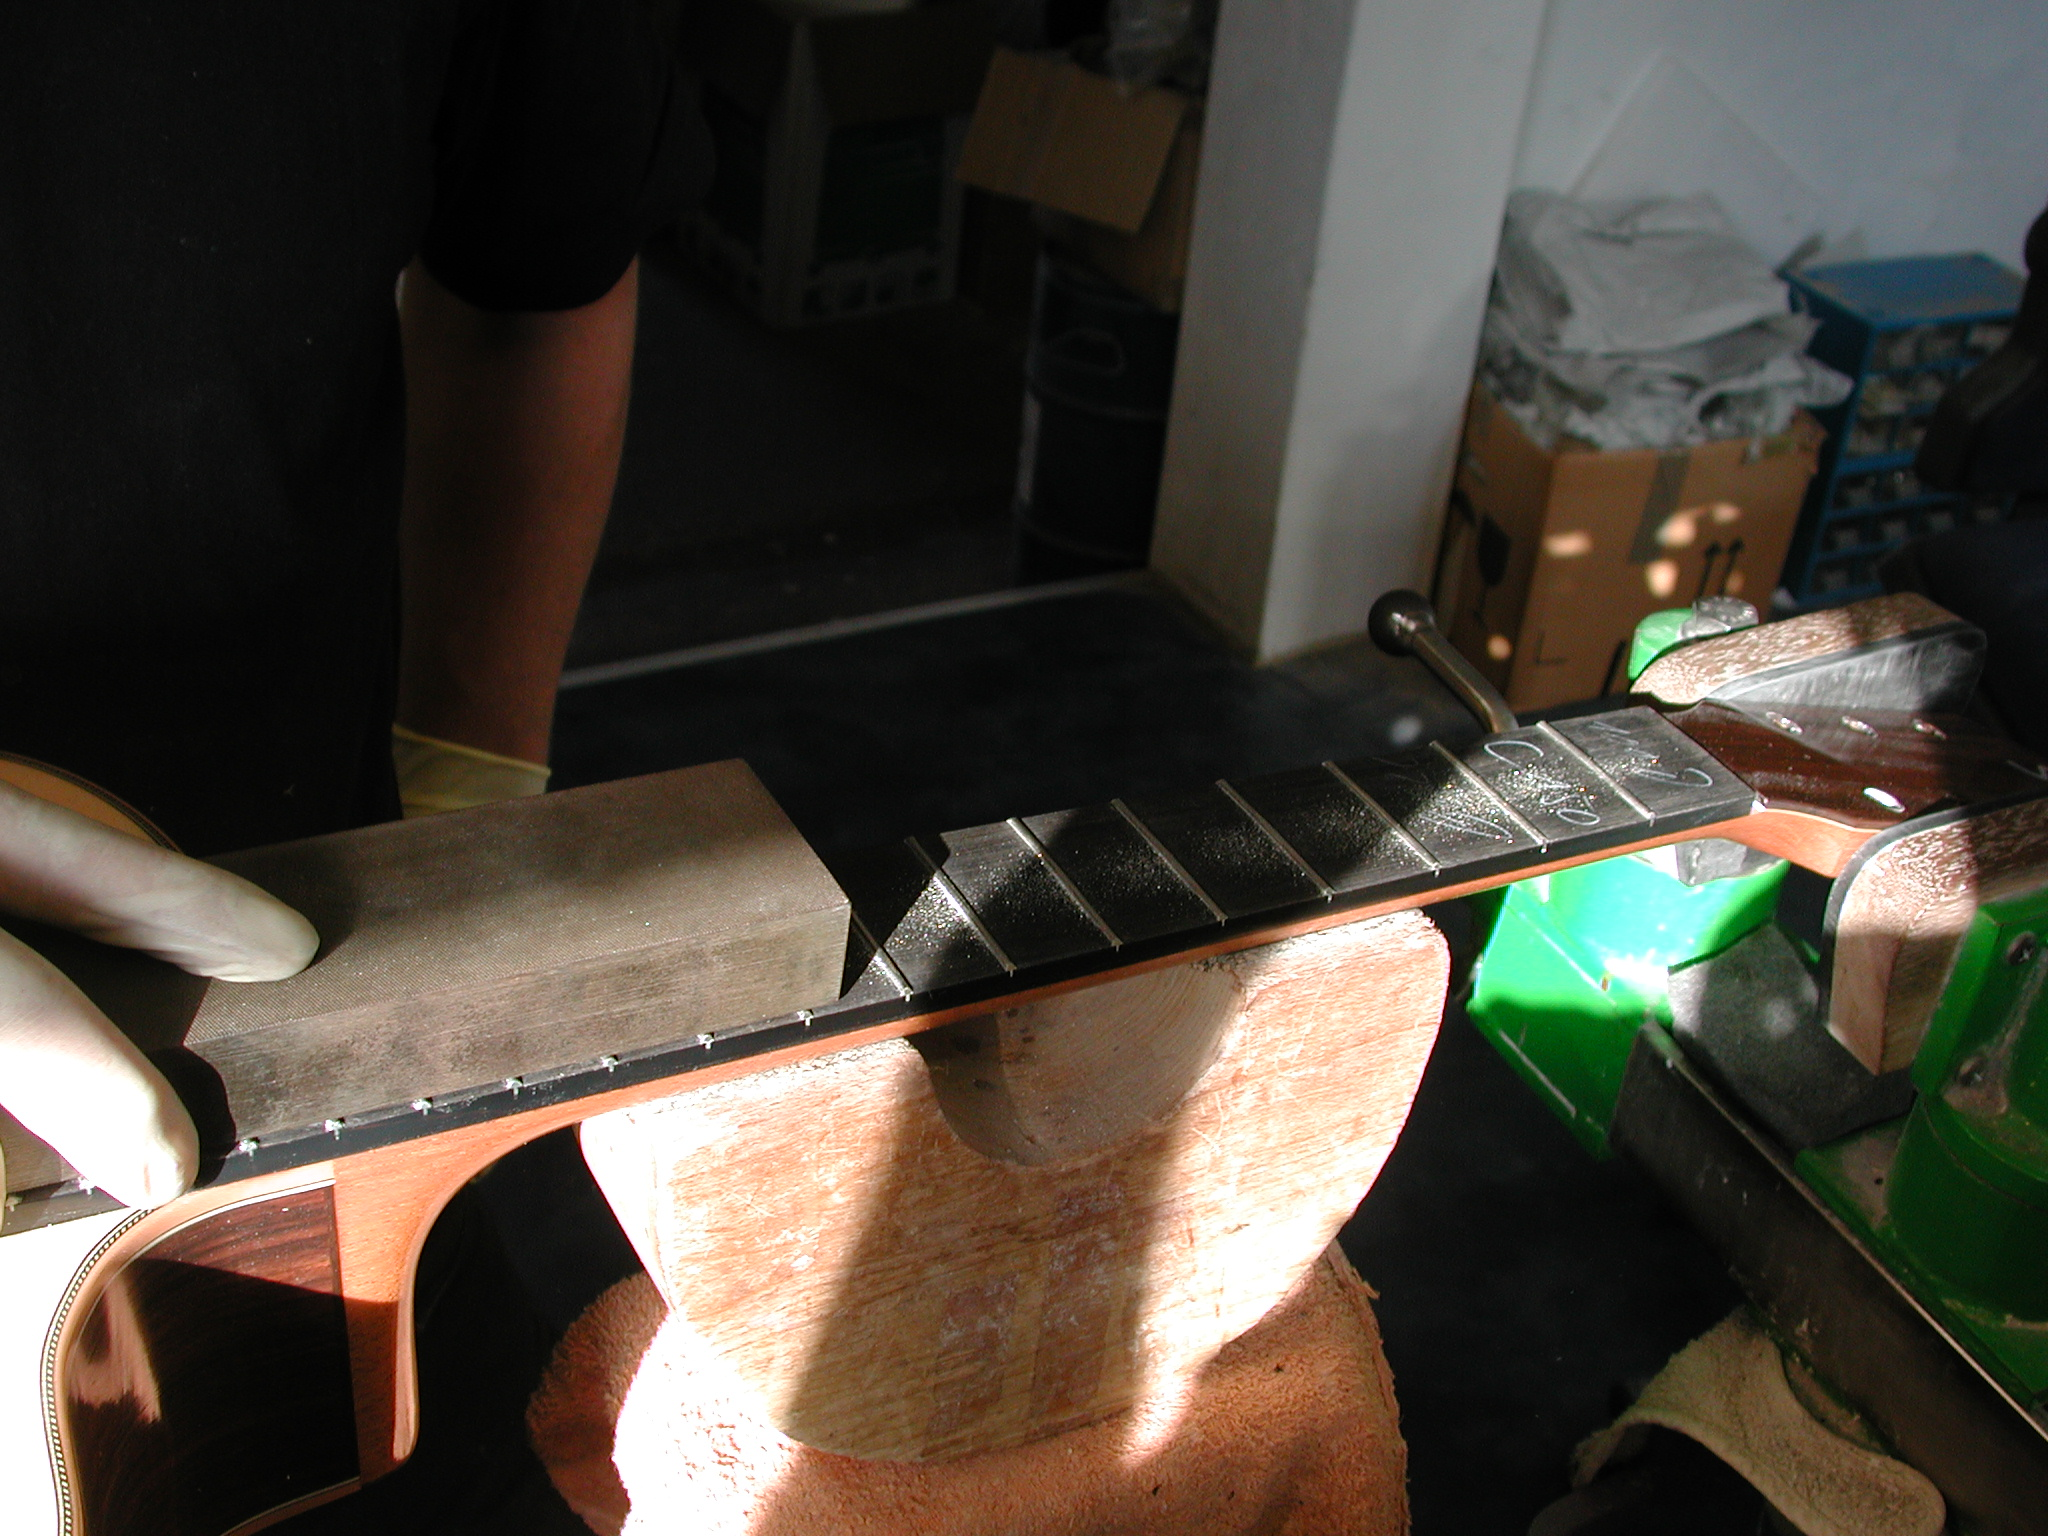 Fingerboard: The frets are levelled.